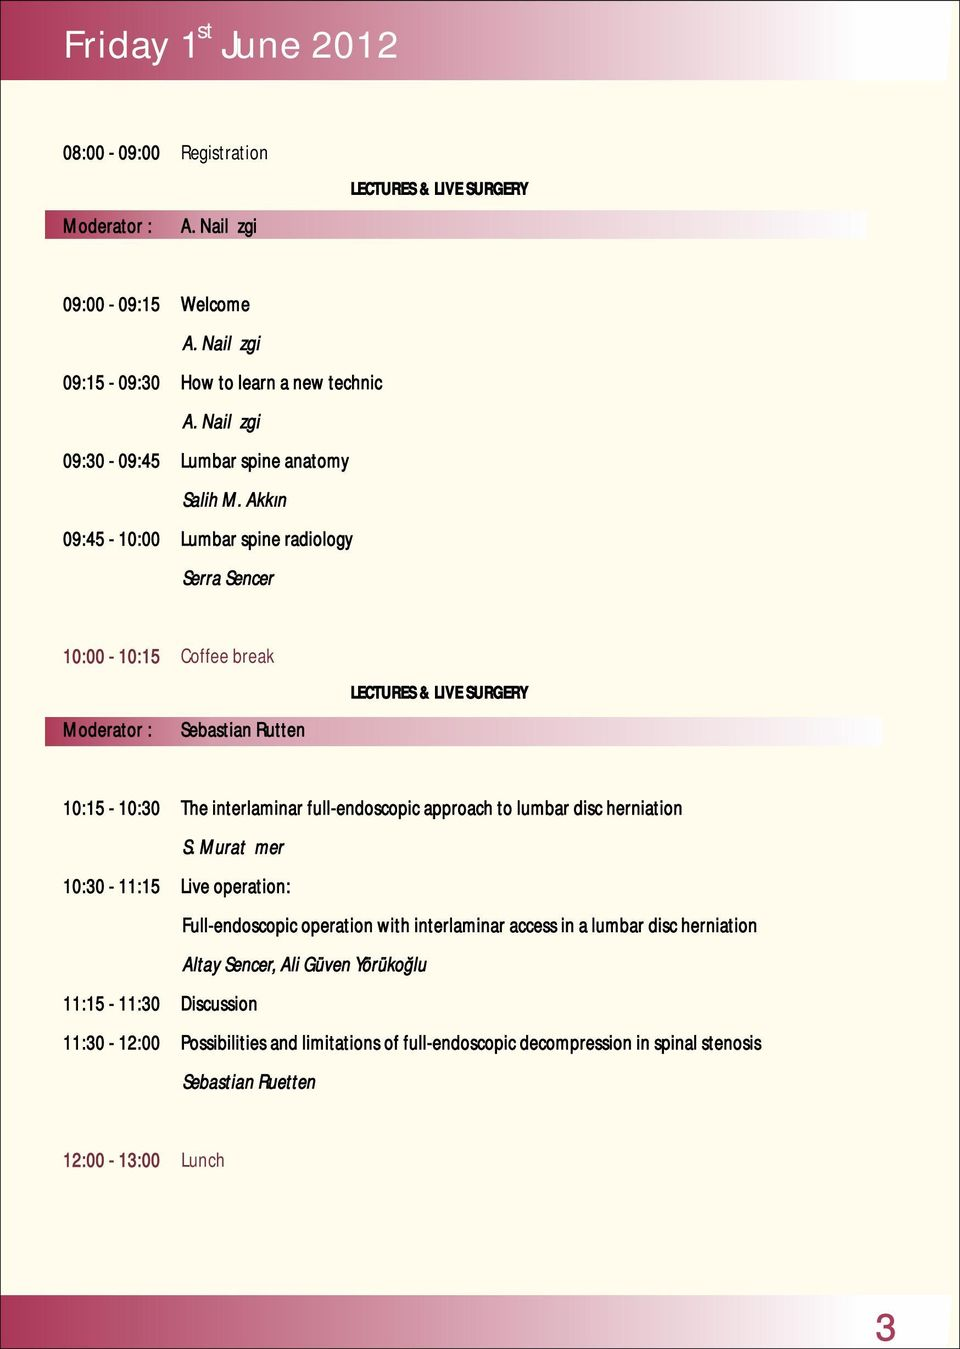 Akkın 09:45-10:00 Lumbar spine radiology Serra Sencer 10:00-10:15 Moderator : Coffee break Sebastian Rutten LECTURES & LIVE SURGERY 10:15-10:30 The interlaminar full-endoscopic approach